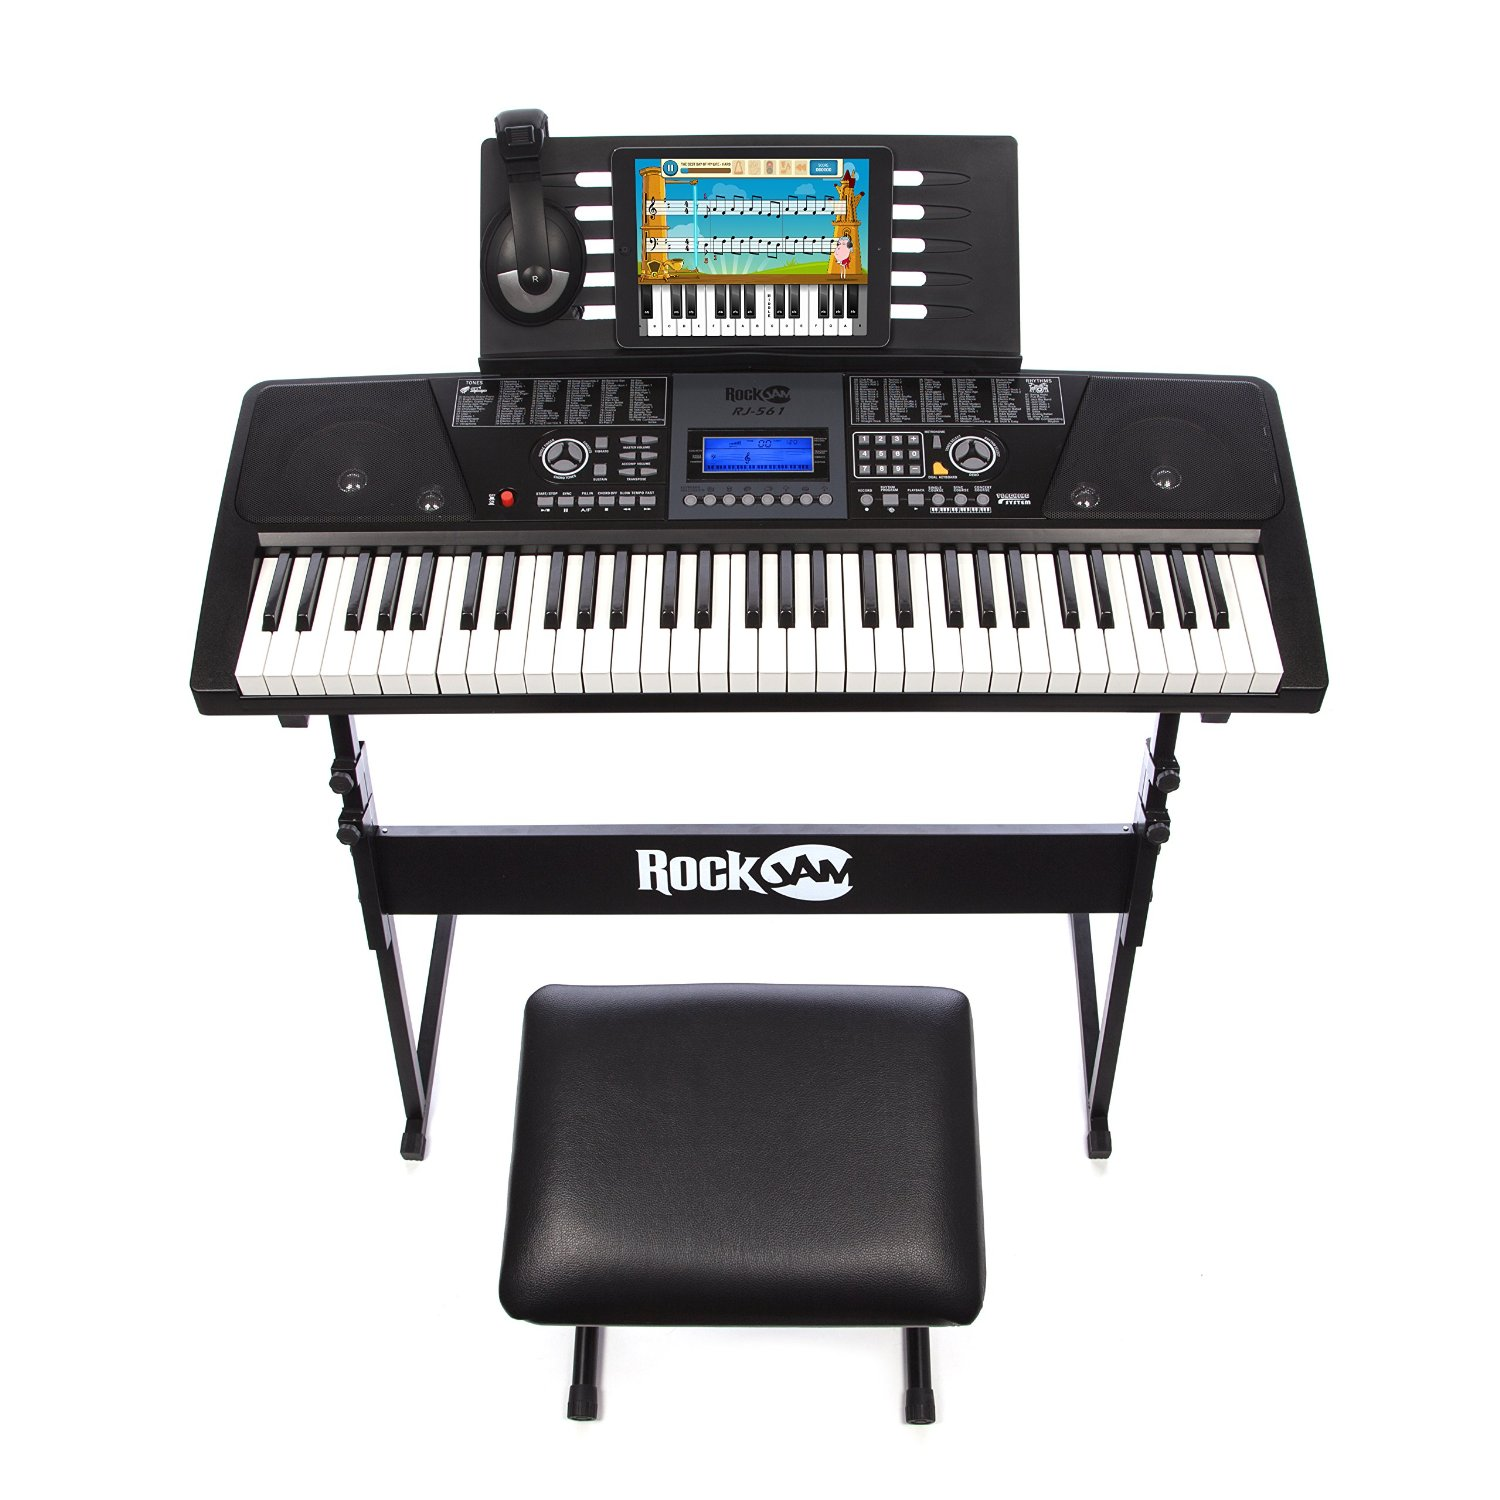 60a49e98e04 RockJam 561 Electronic 61 Key Digital Piano Keyboard SuperKit with Stand,  Stool, Headphones, & Includes Piano Maestro Teaching App with 30 Songs